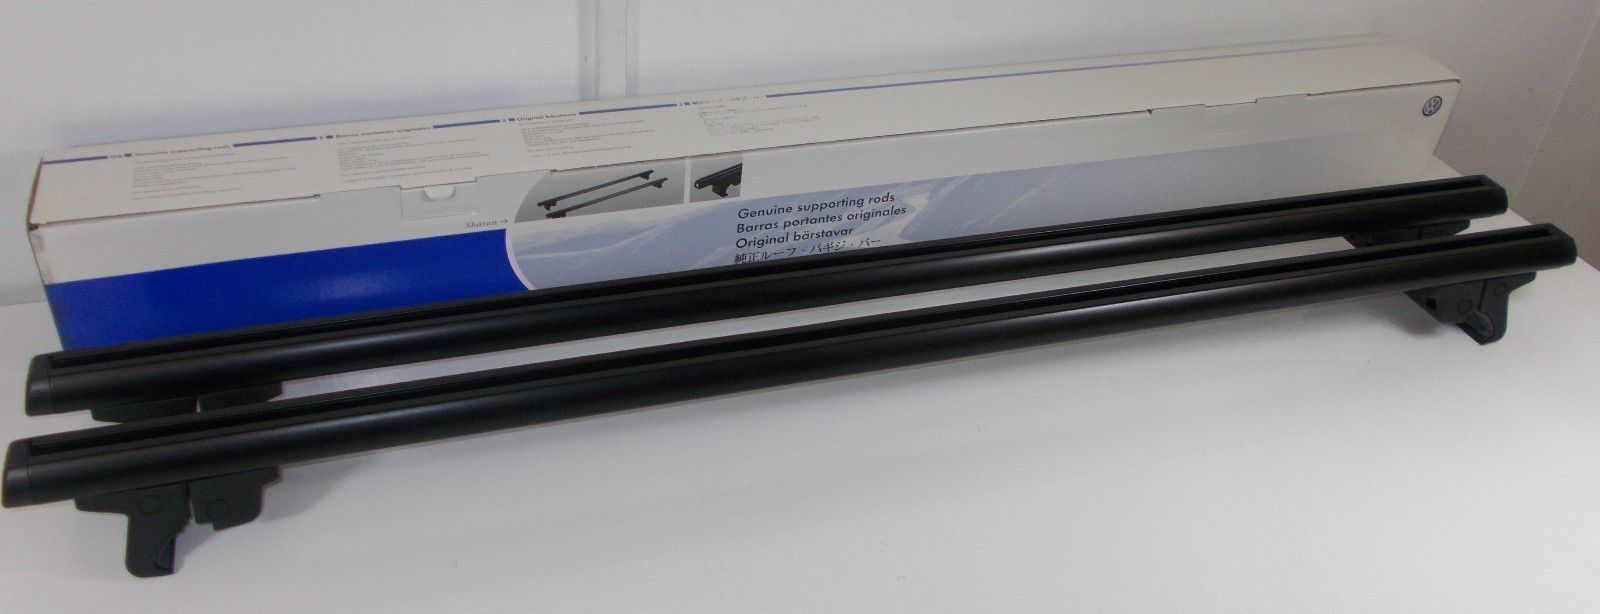 Genuine Vw Sharan Seat Alhambra Roof Bars Set For Models